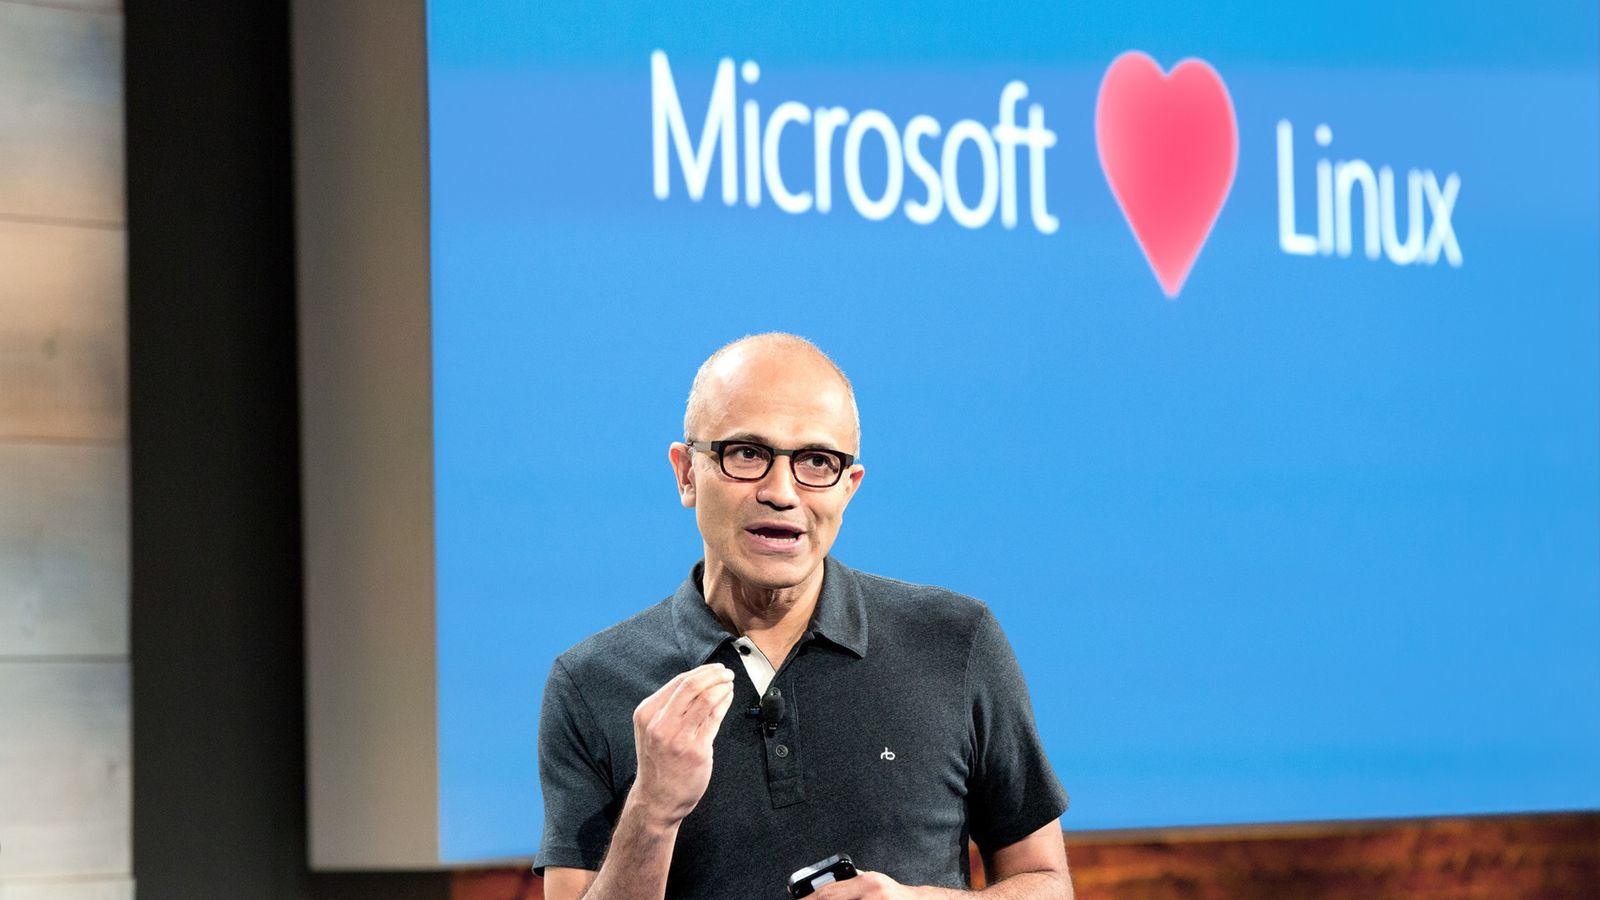 Microsoft Joins as Platinum Member in Linux Foundation